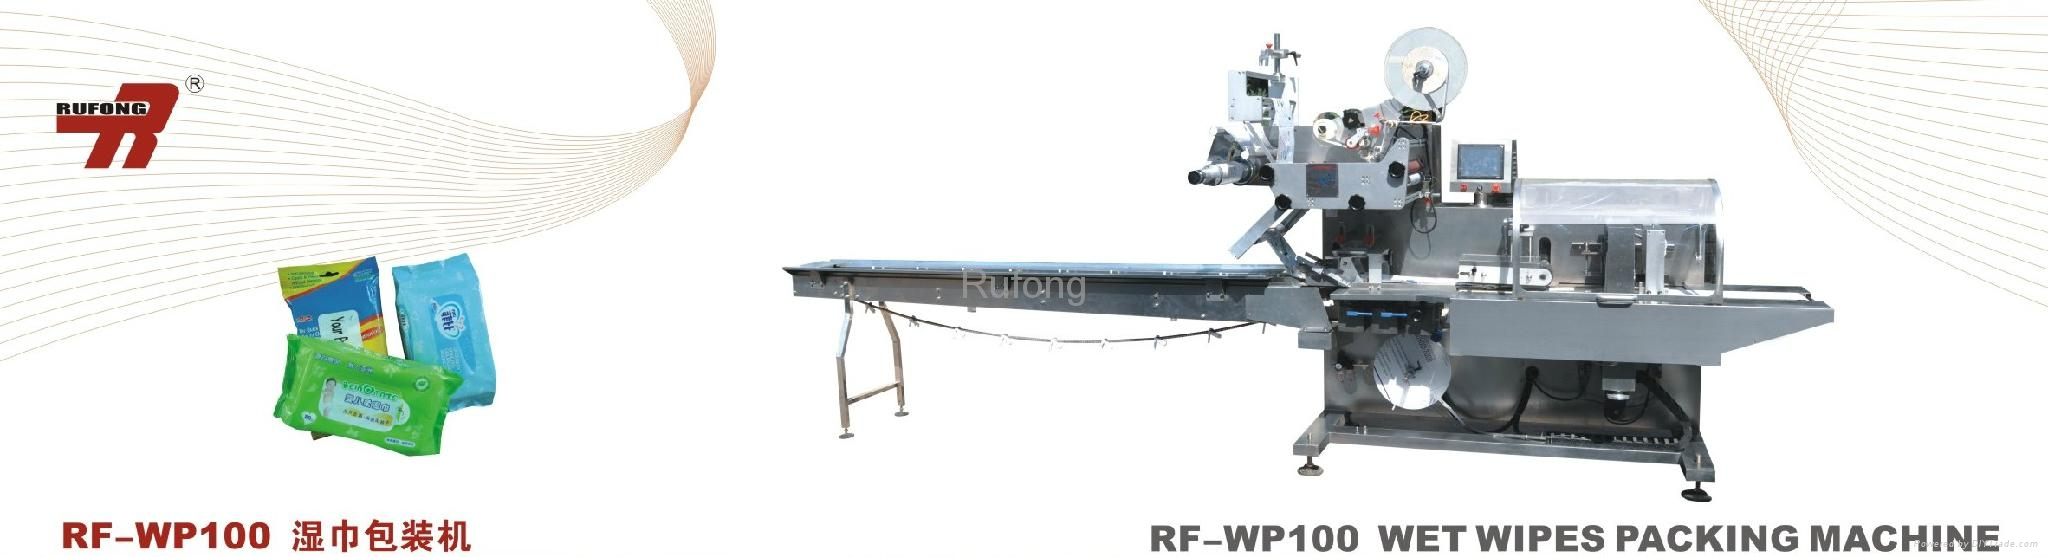 RF-WP100 Wet Wipes Packing Machine 5